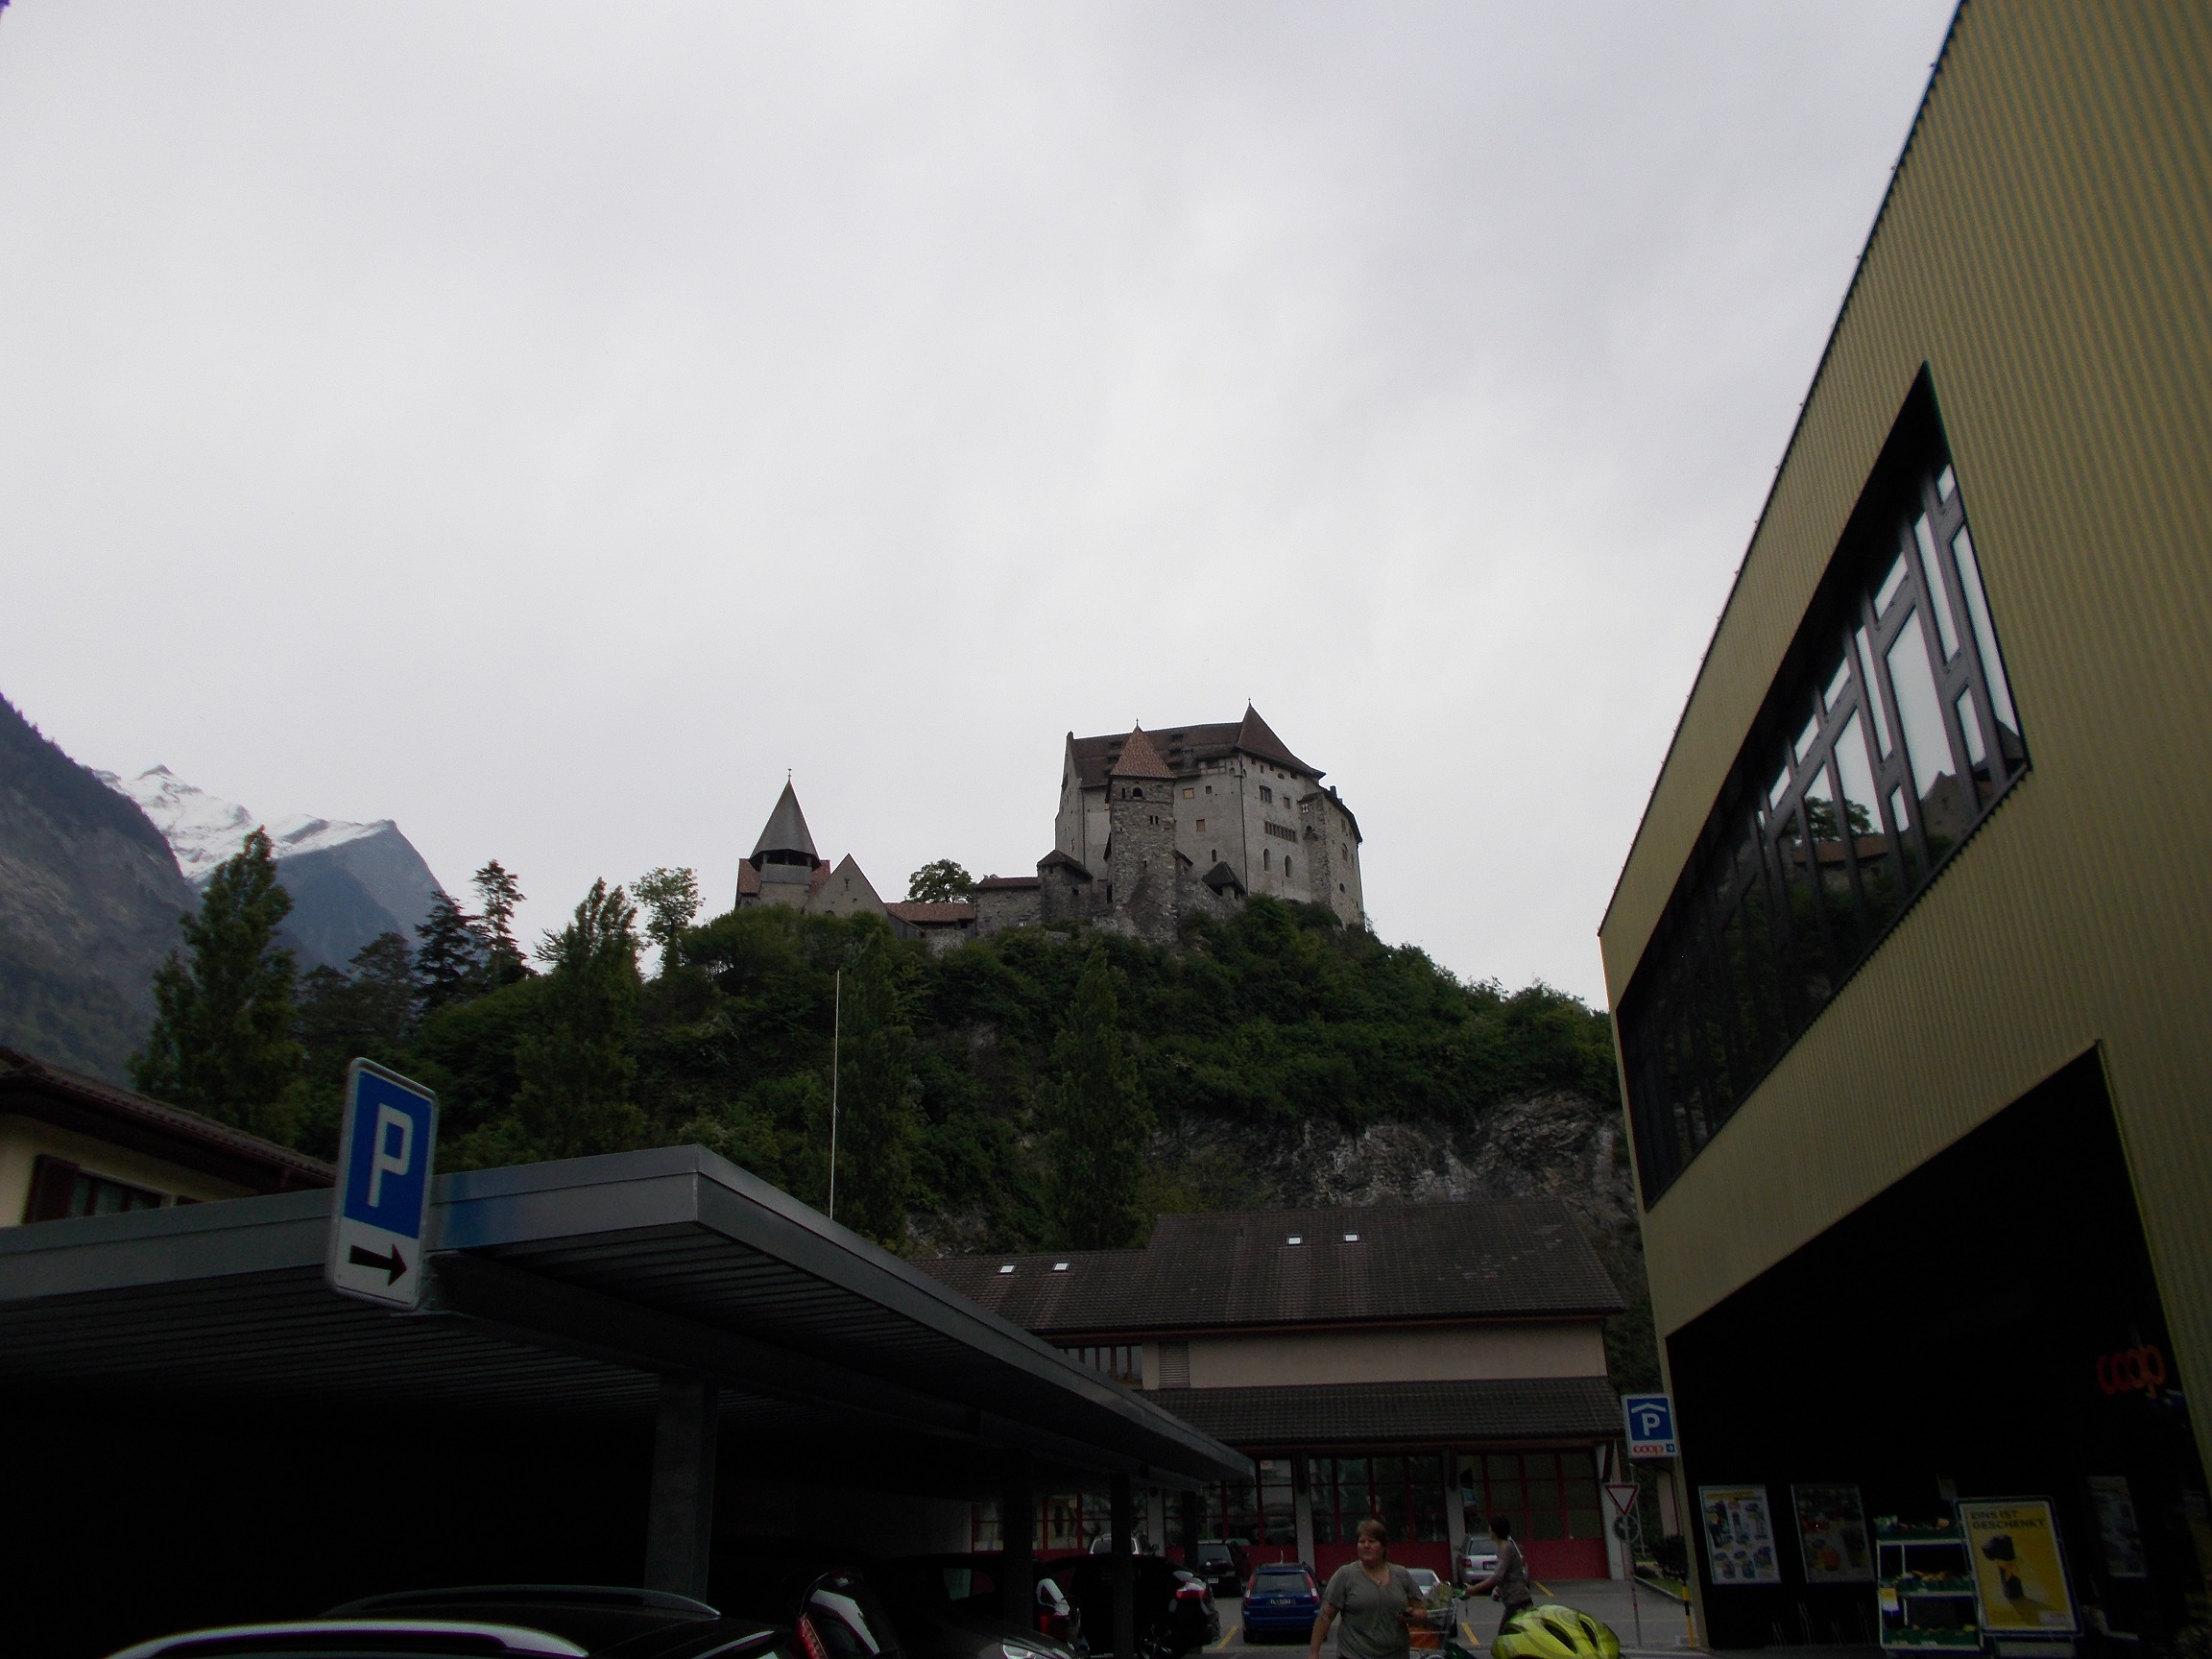 Picture of a large castle atop a hill, photographed from below.